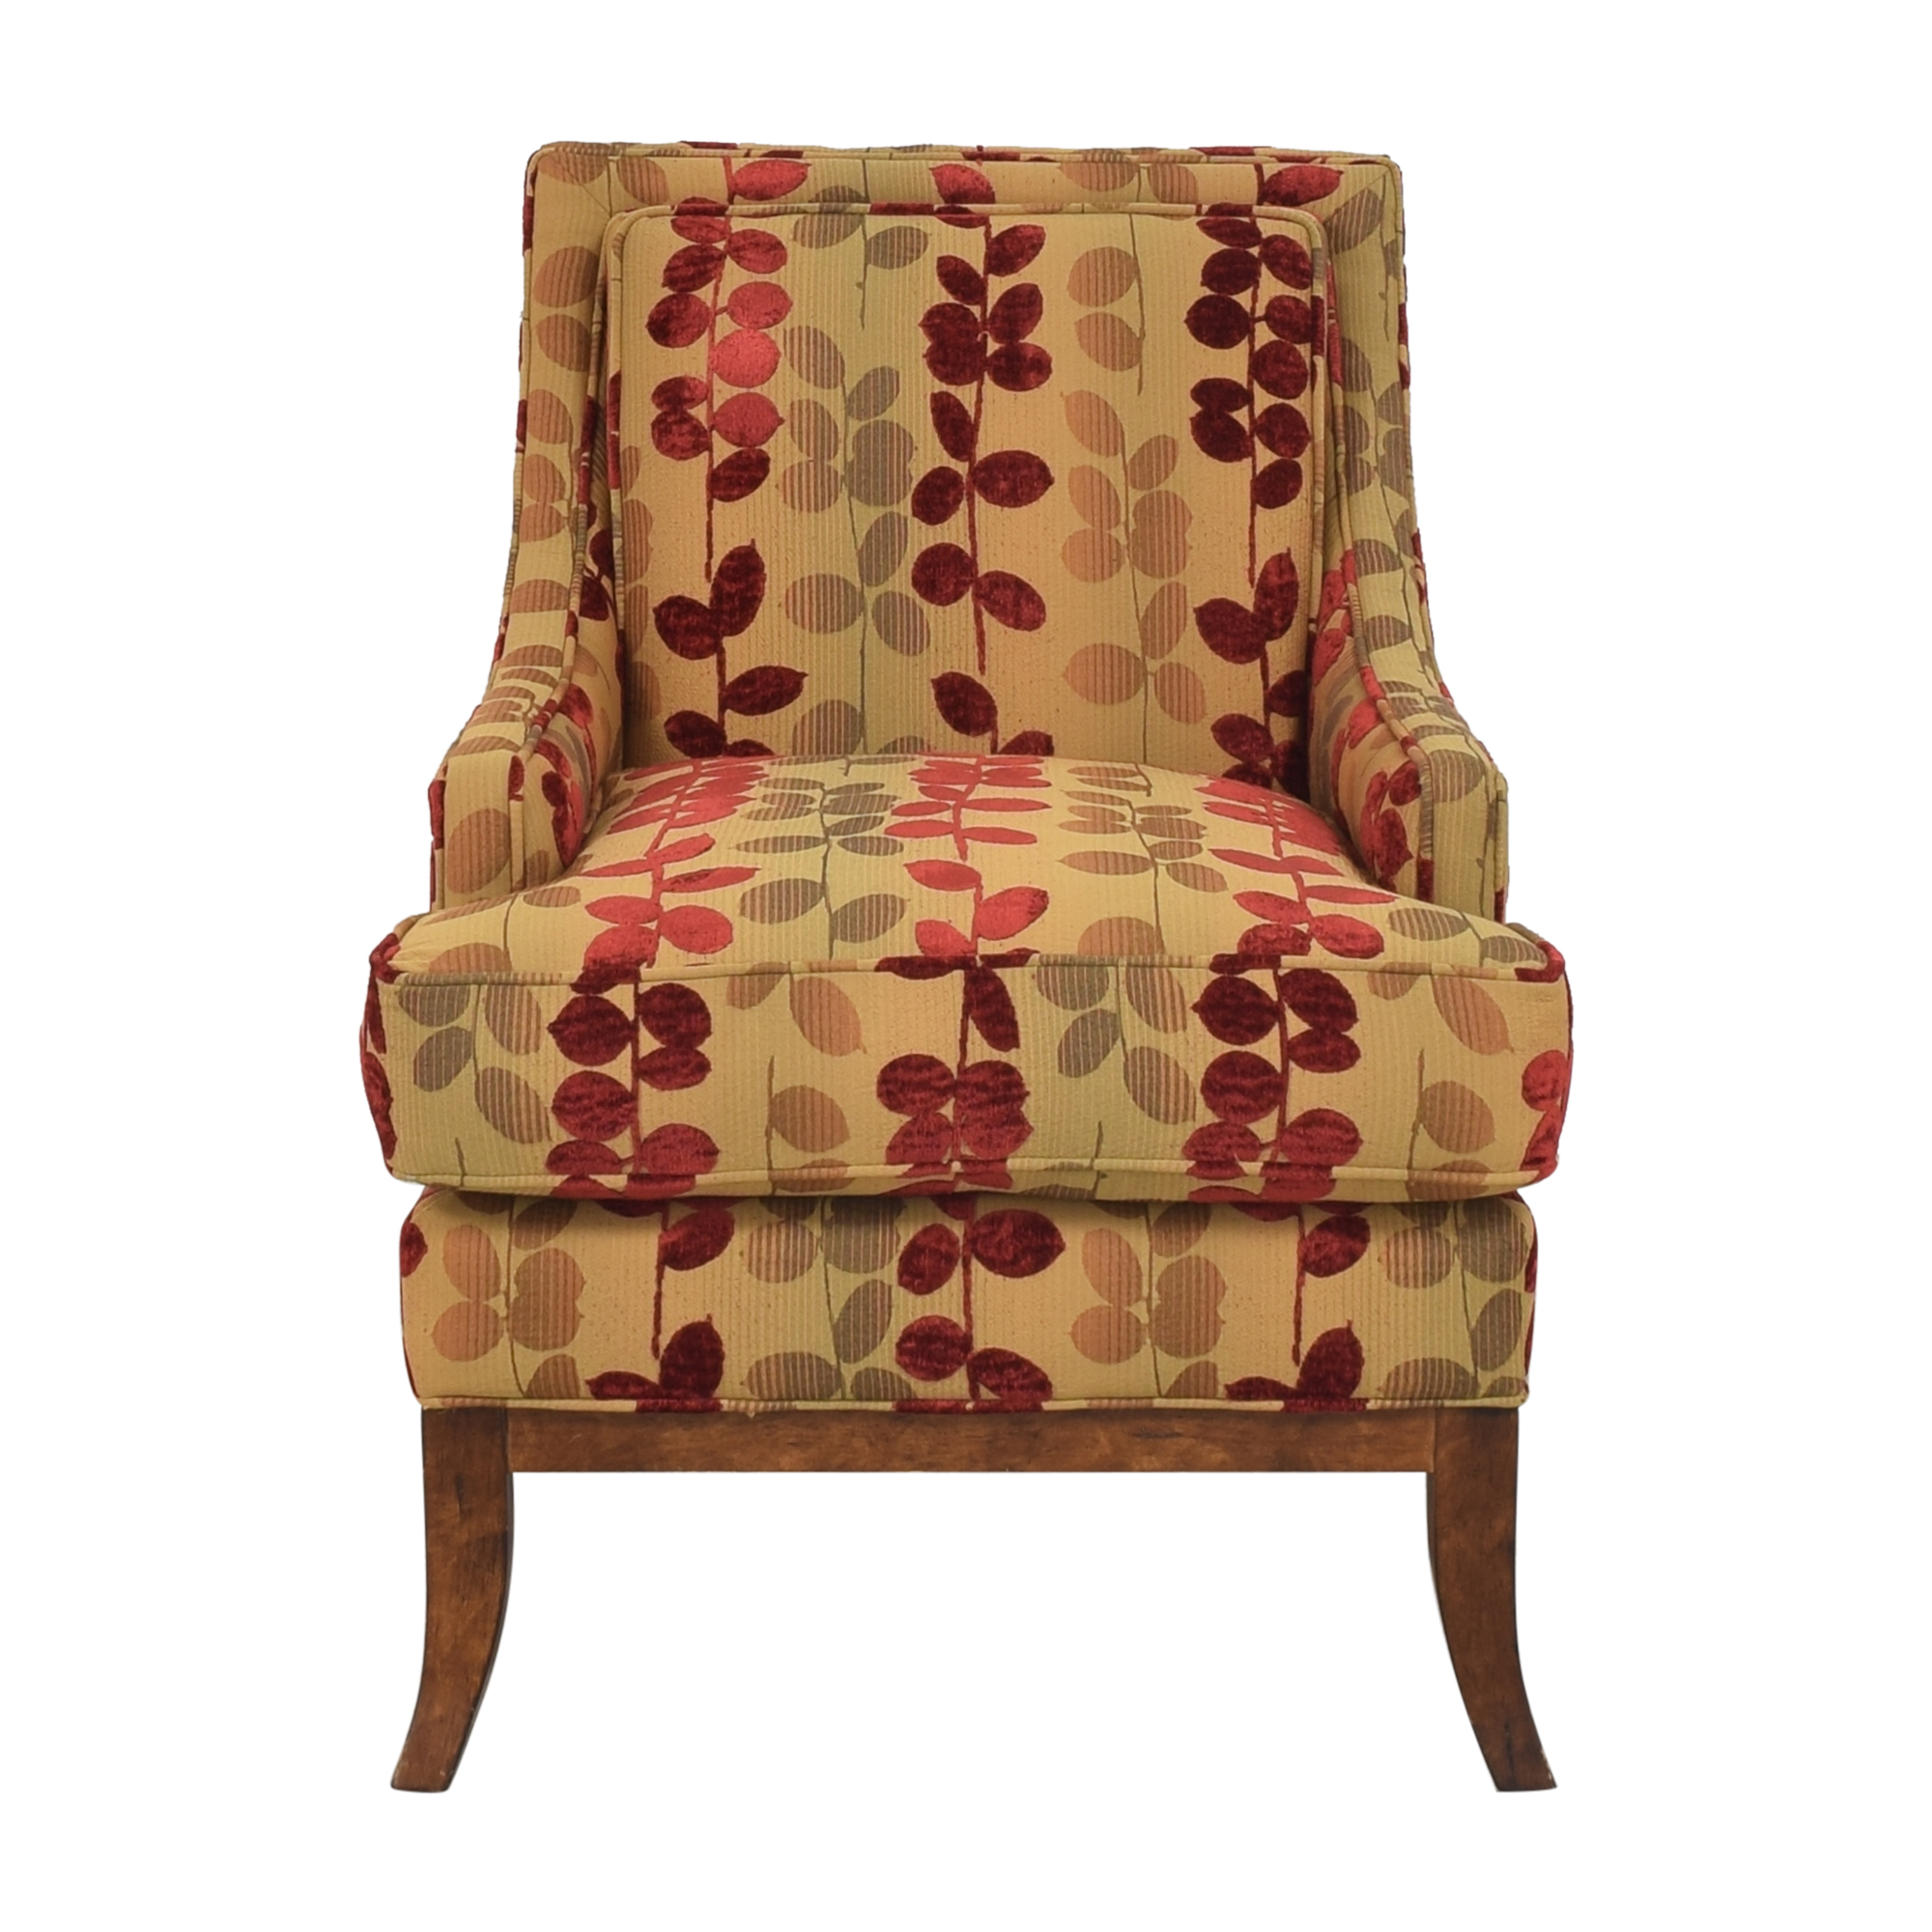 buy Highland House Furniture Highland House Furniture Corey Chair online